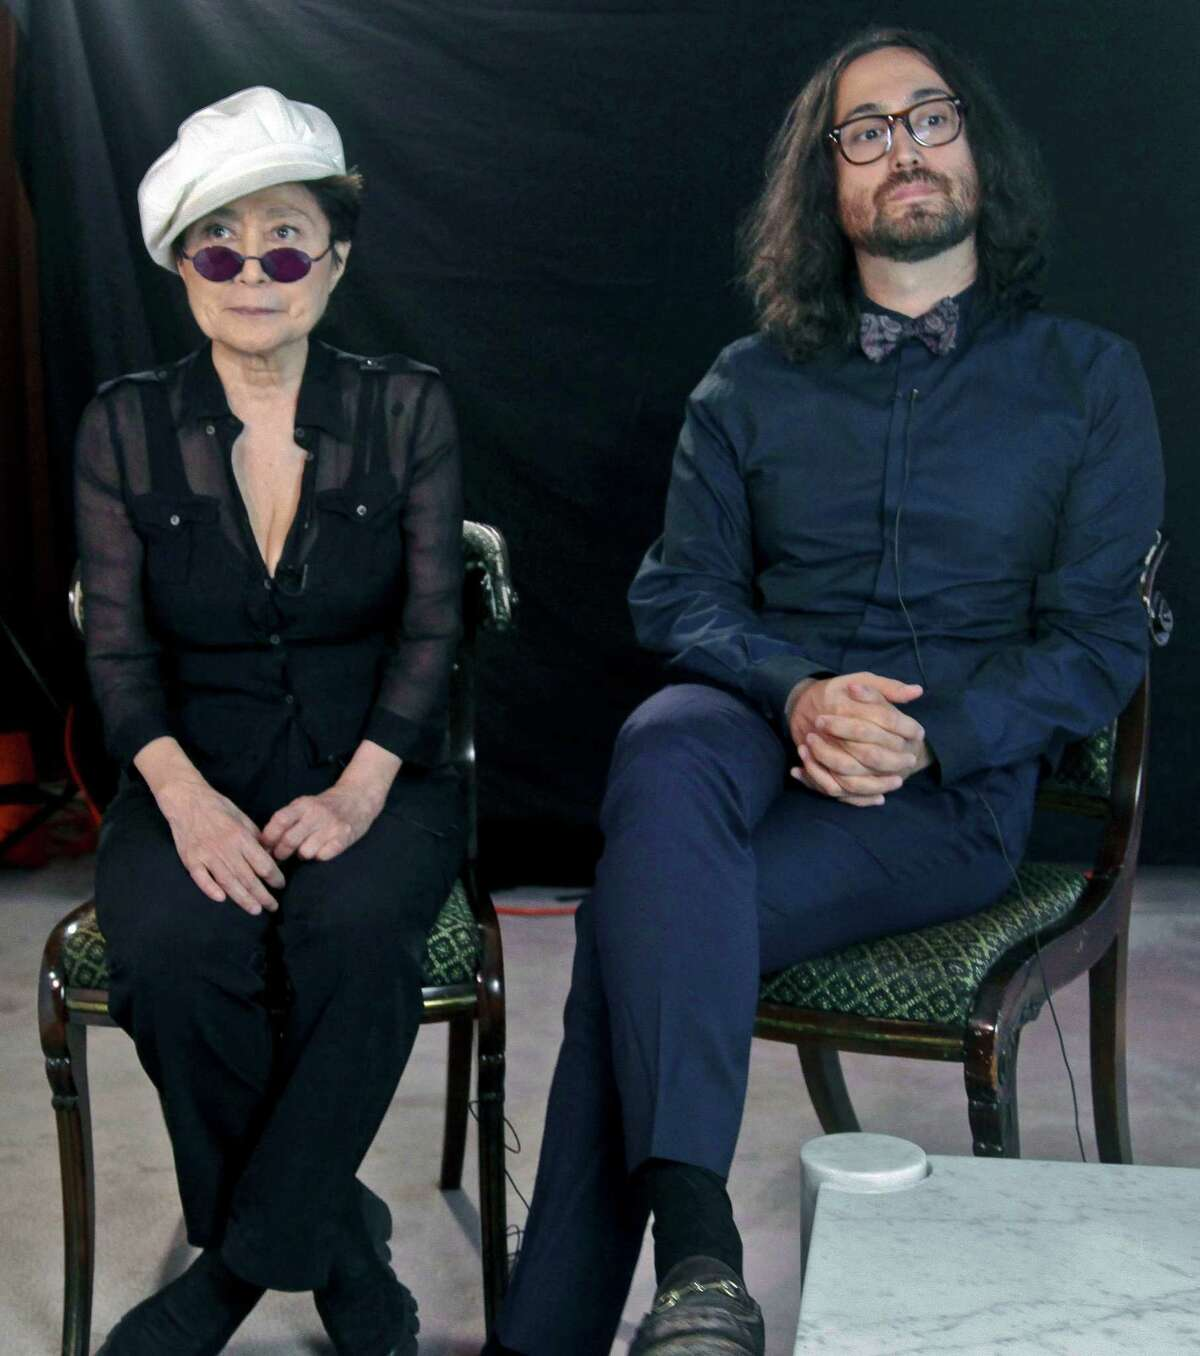 Yoko Ono, left, and her son Sean Lennon, right, listen during an interview, following the launch of a coalition of artists opposing hydraulic fracturing on Wednesday, Aug. 29, 2012 in New York. Lennon and Ono have joined the coalition called Artist Against Fracking to lobby Gov. Andrew Cuomo to ban the practice of drilling for gas in New York. (AP Photo/Bebeto Matthews)